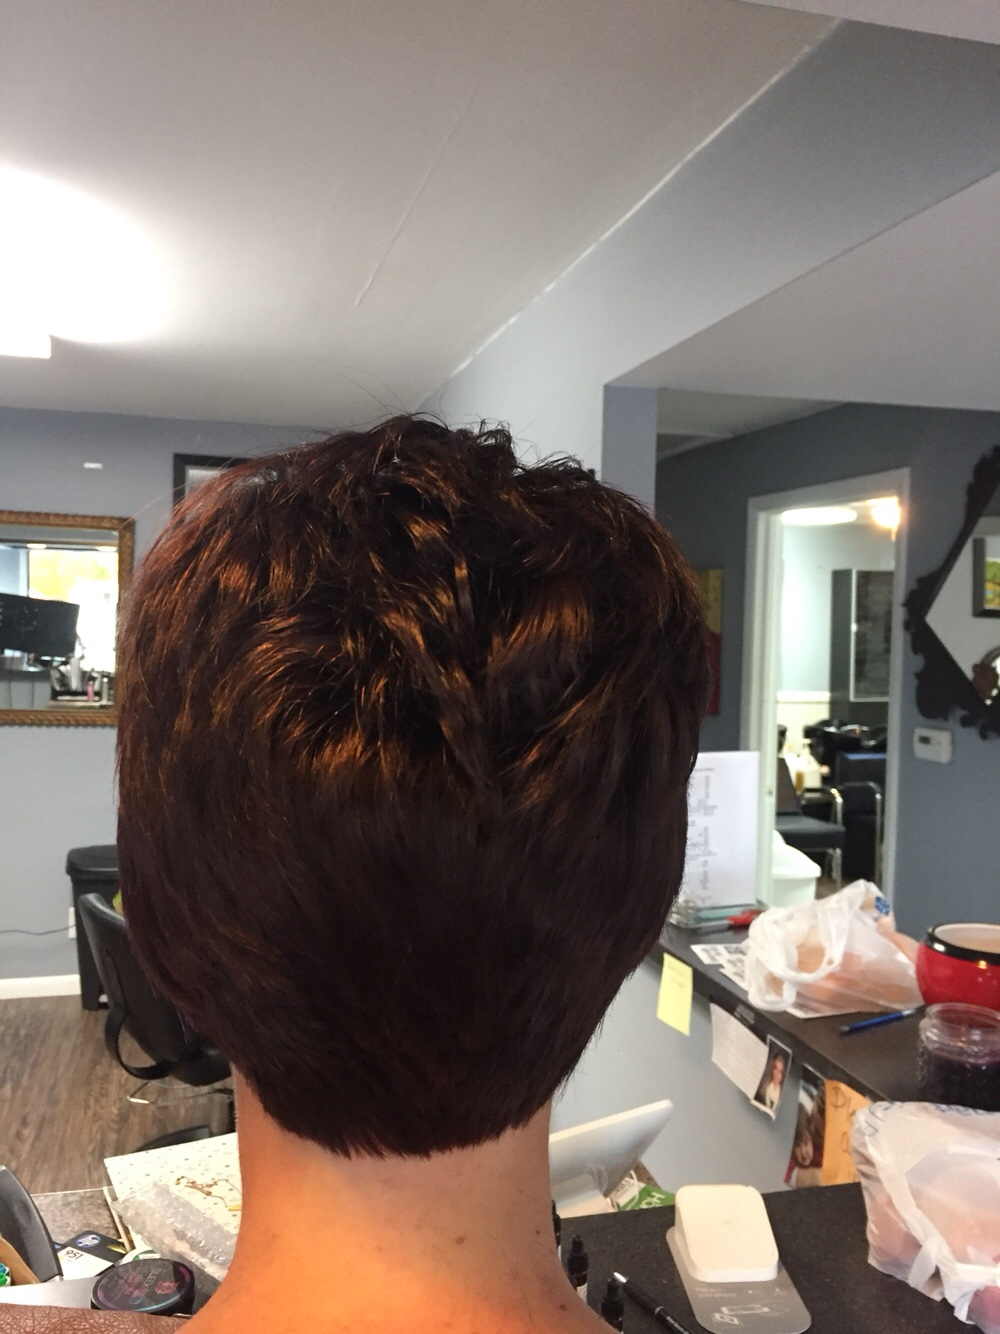 Shear Beauty Hair Designs In Dwight Il Vagaro